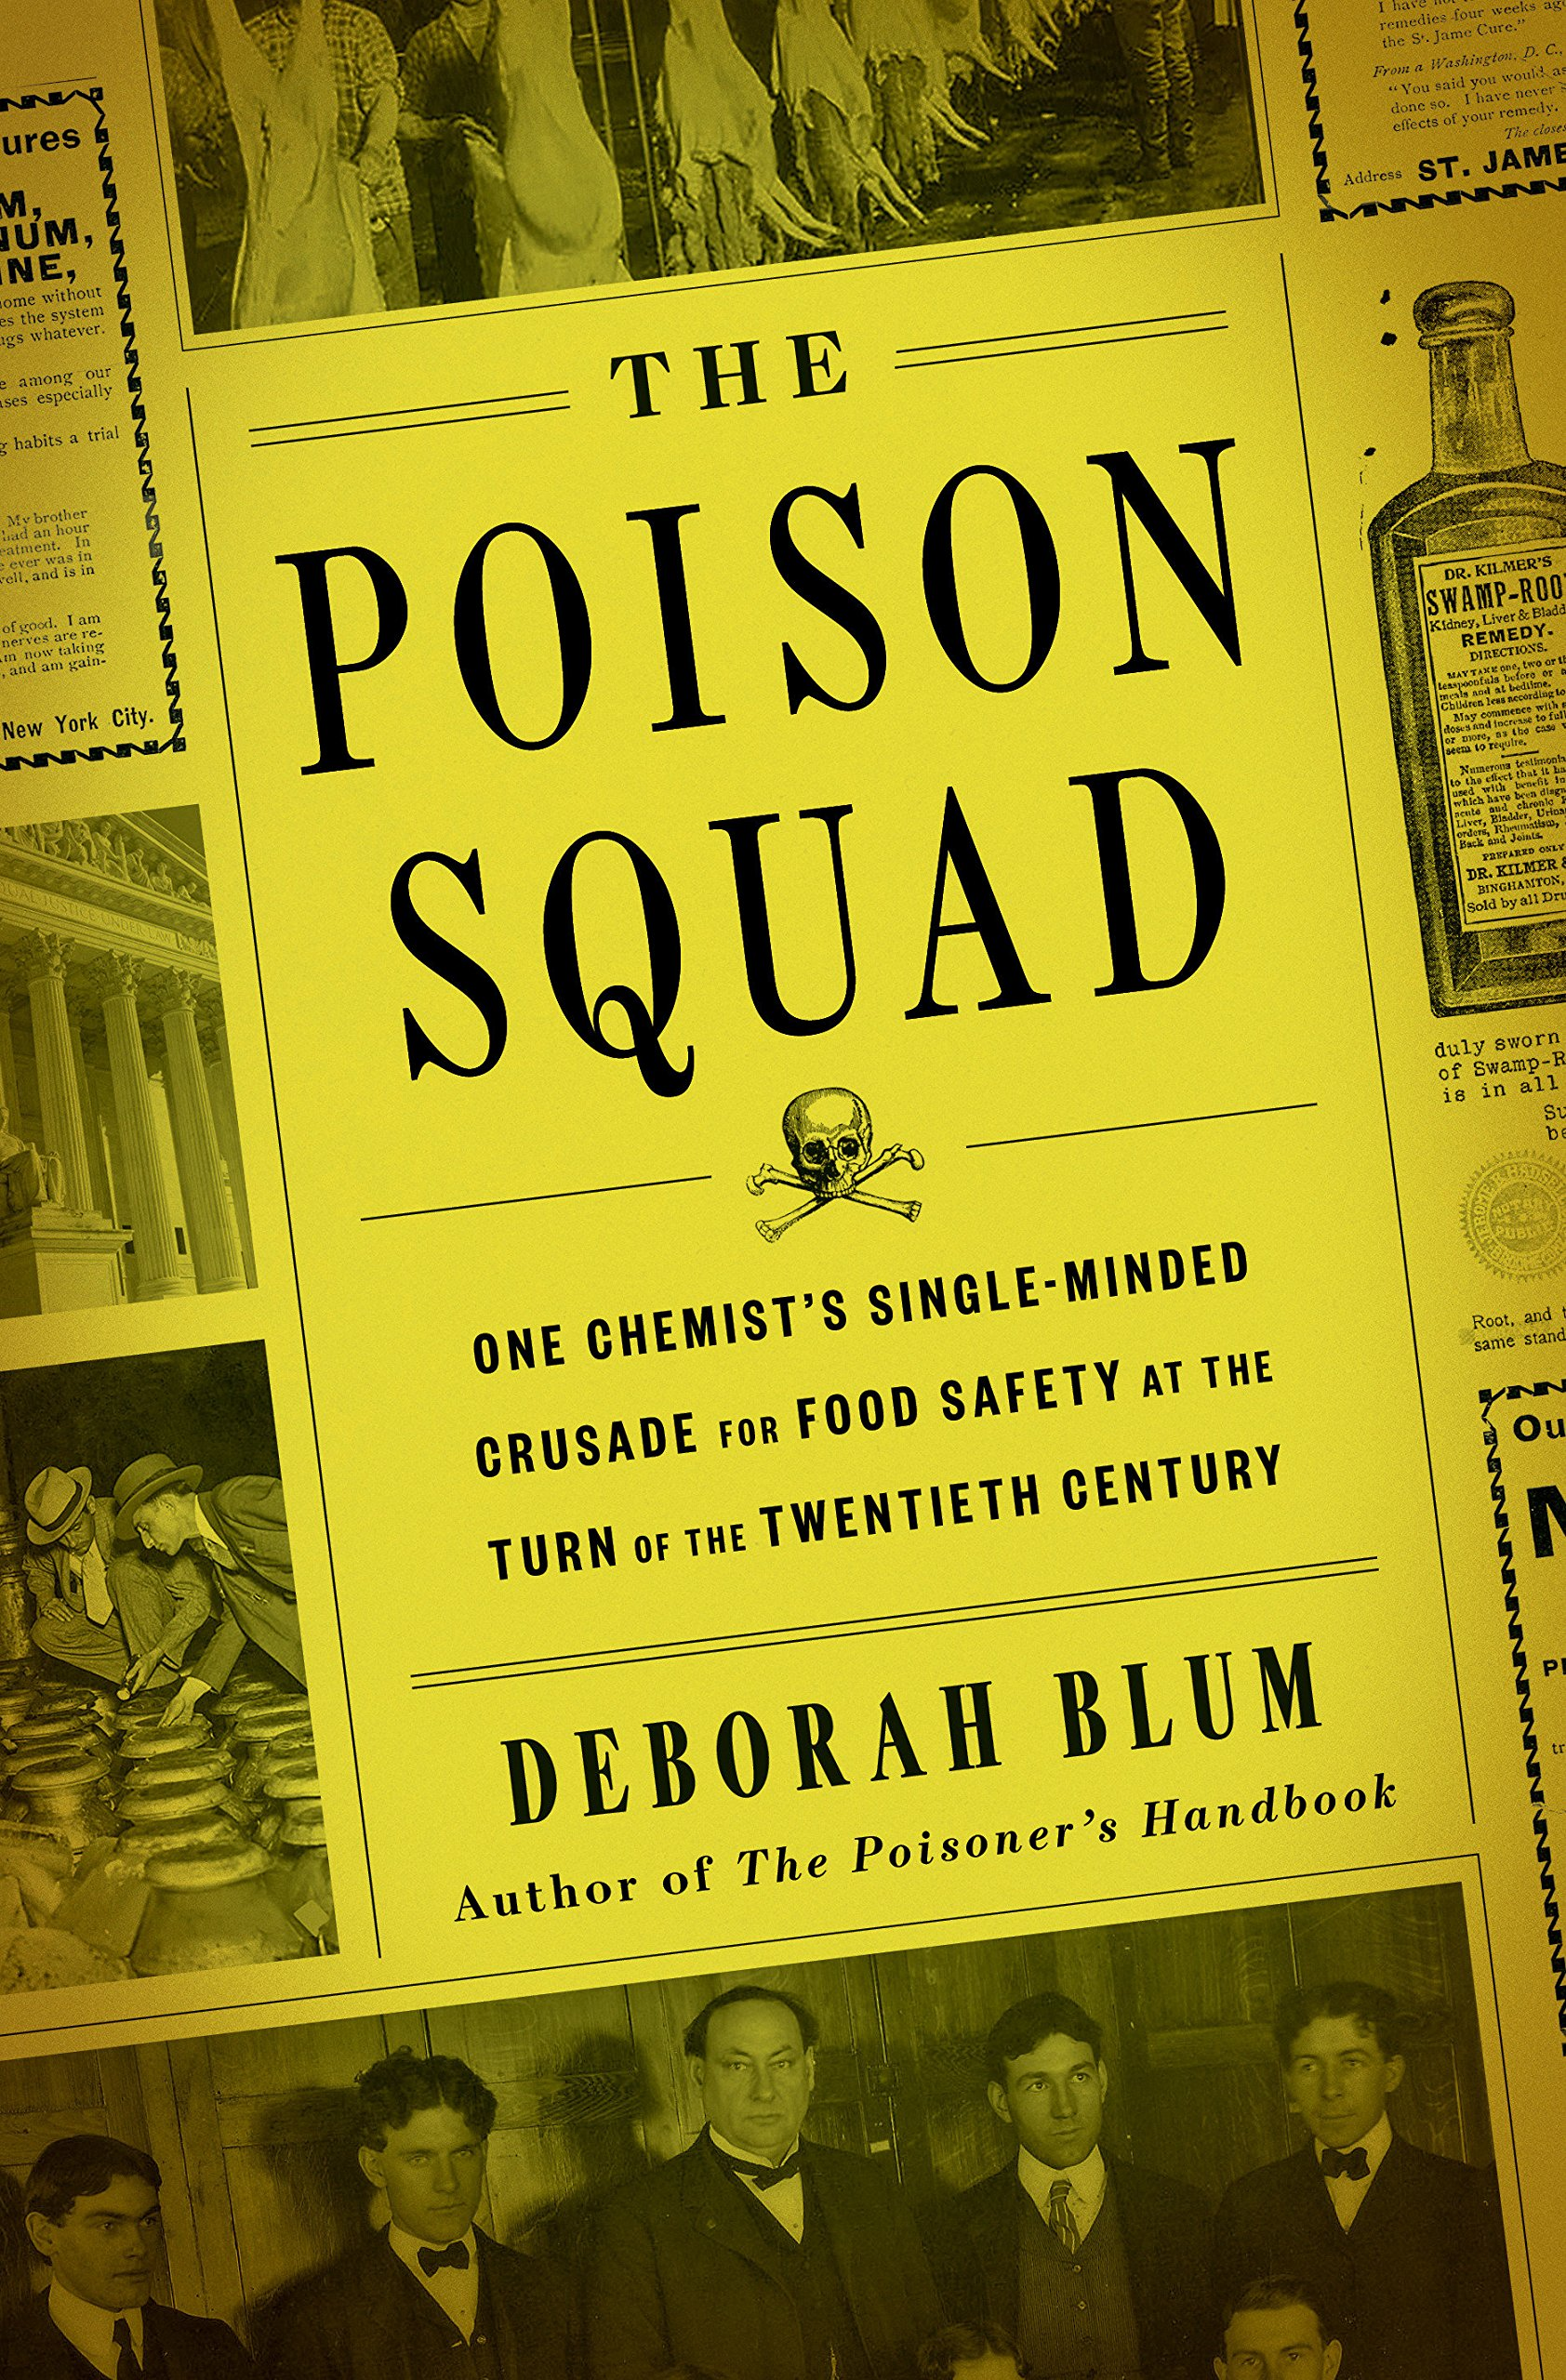 Image result for the poison squad deborah blum